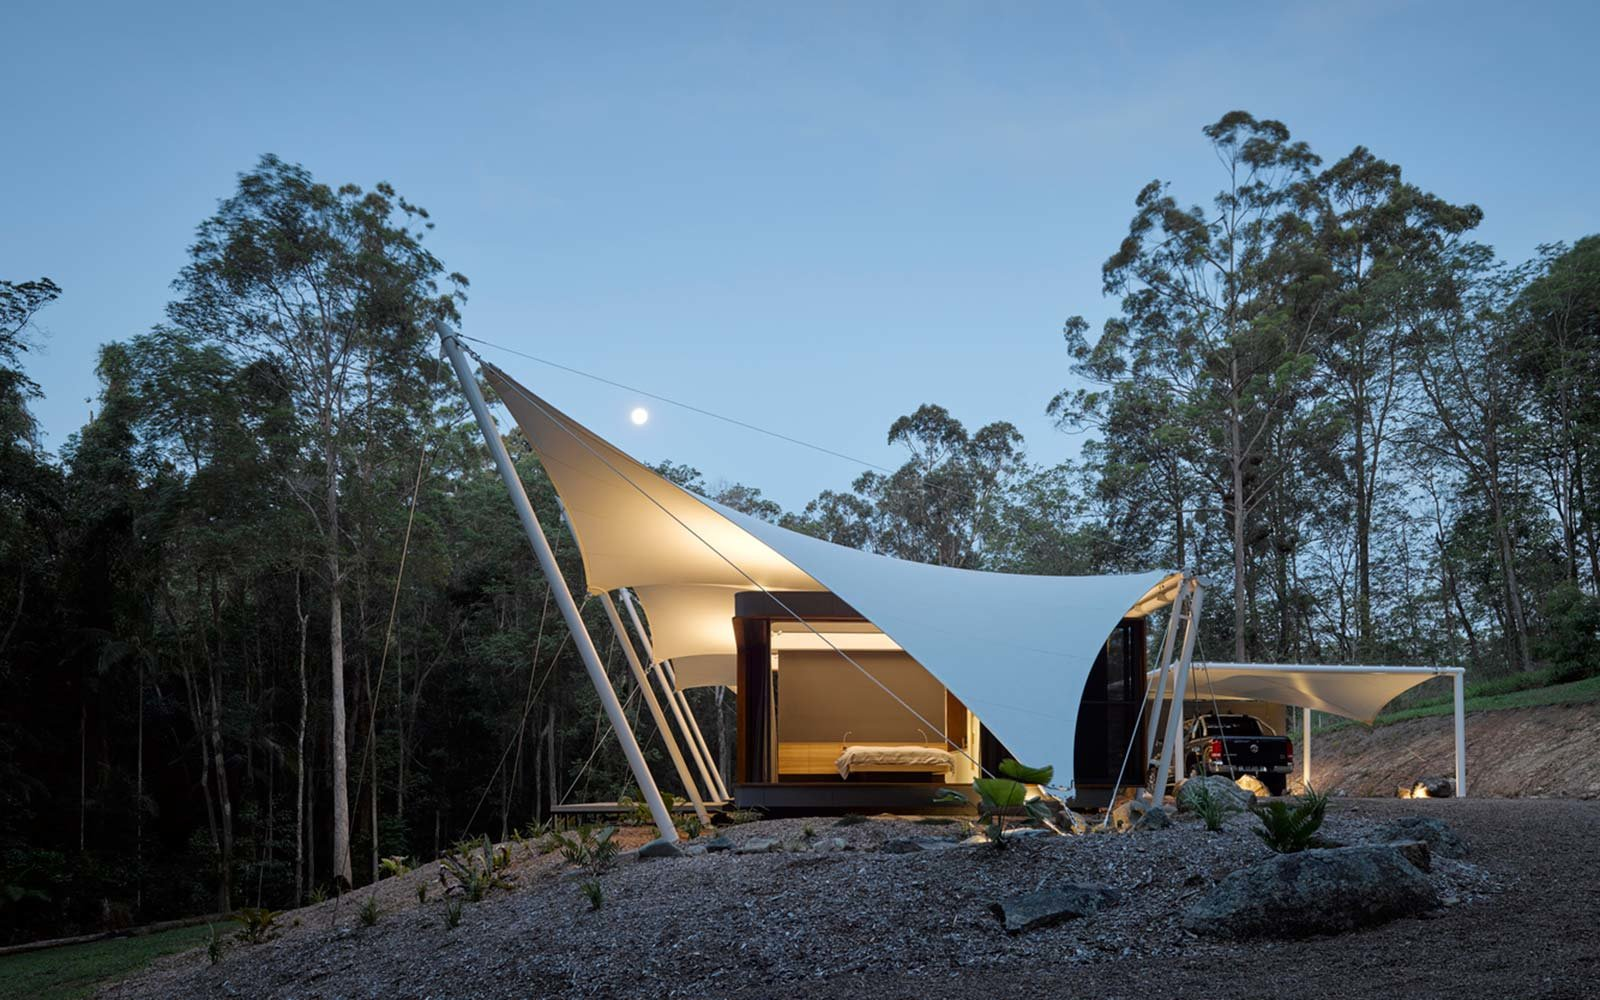 Love Camping? This Is the House of Your Dreams